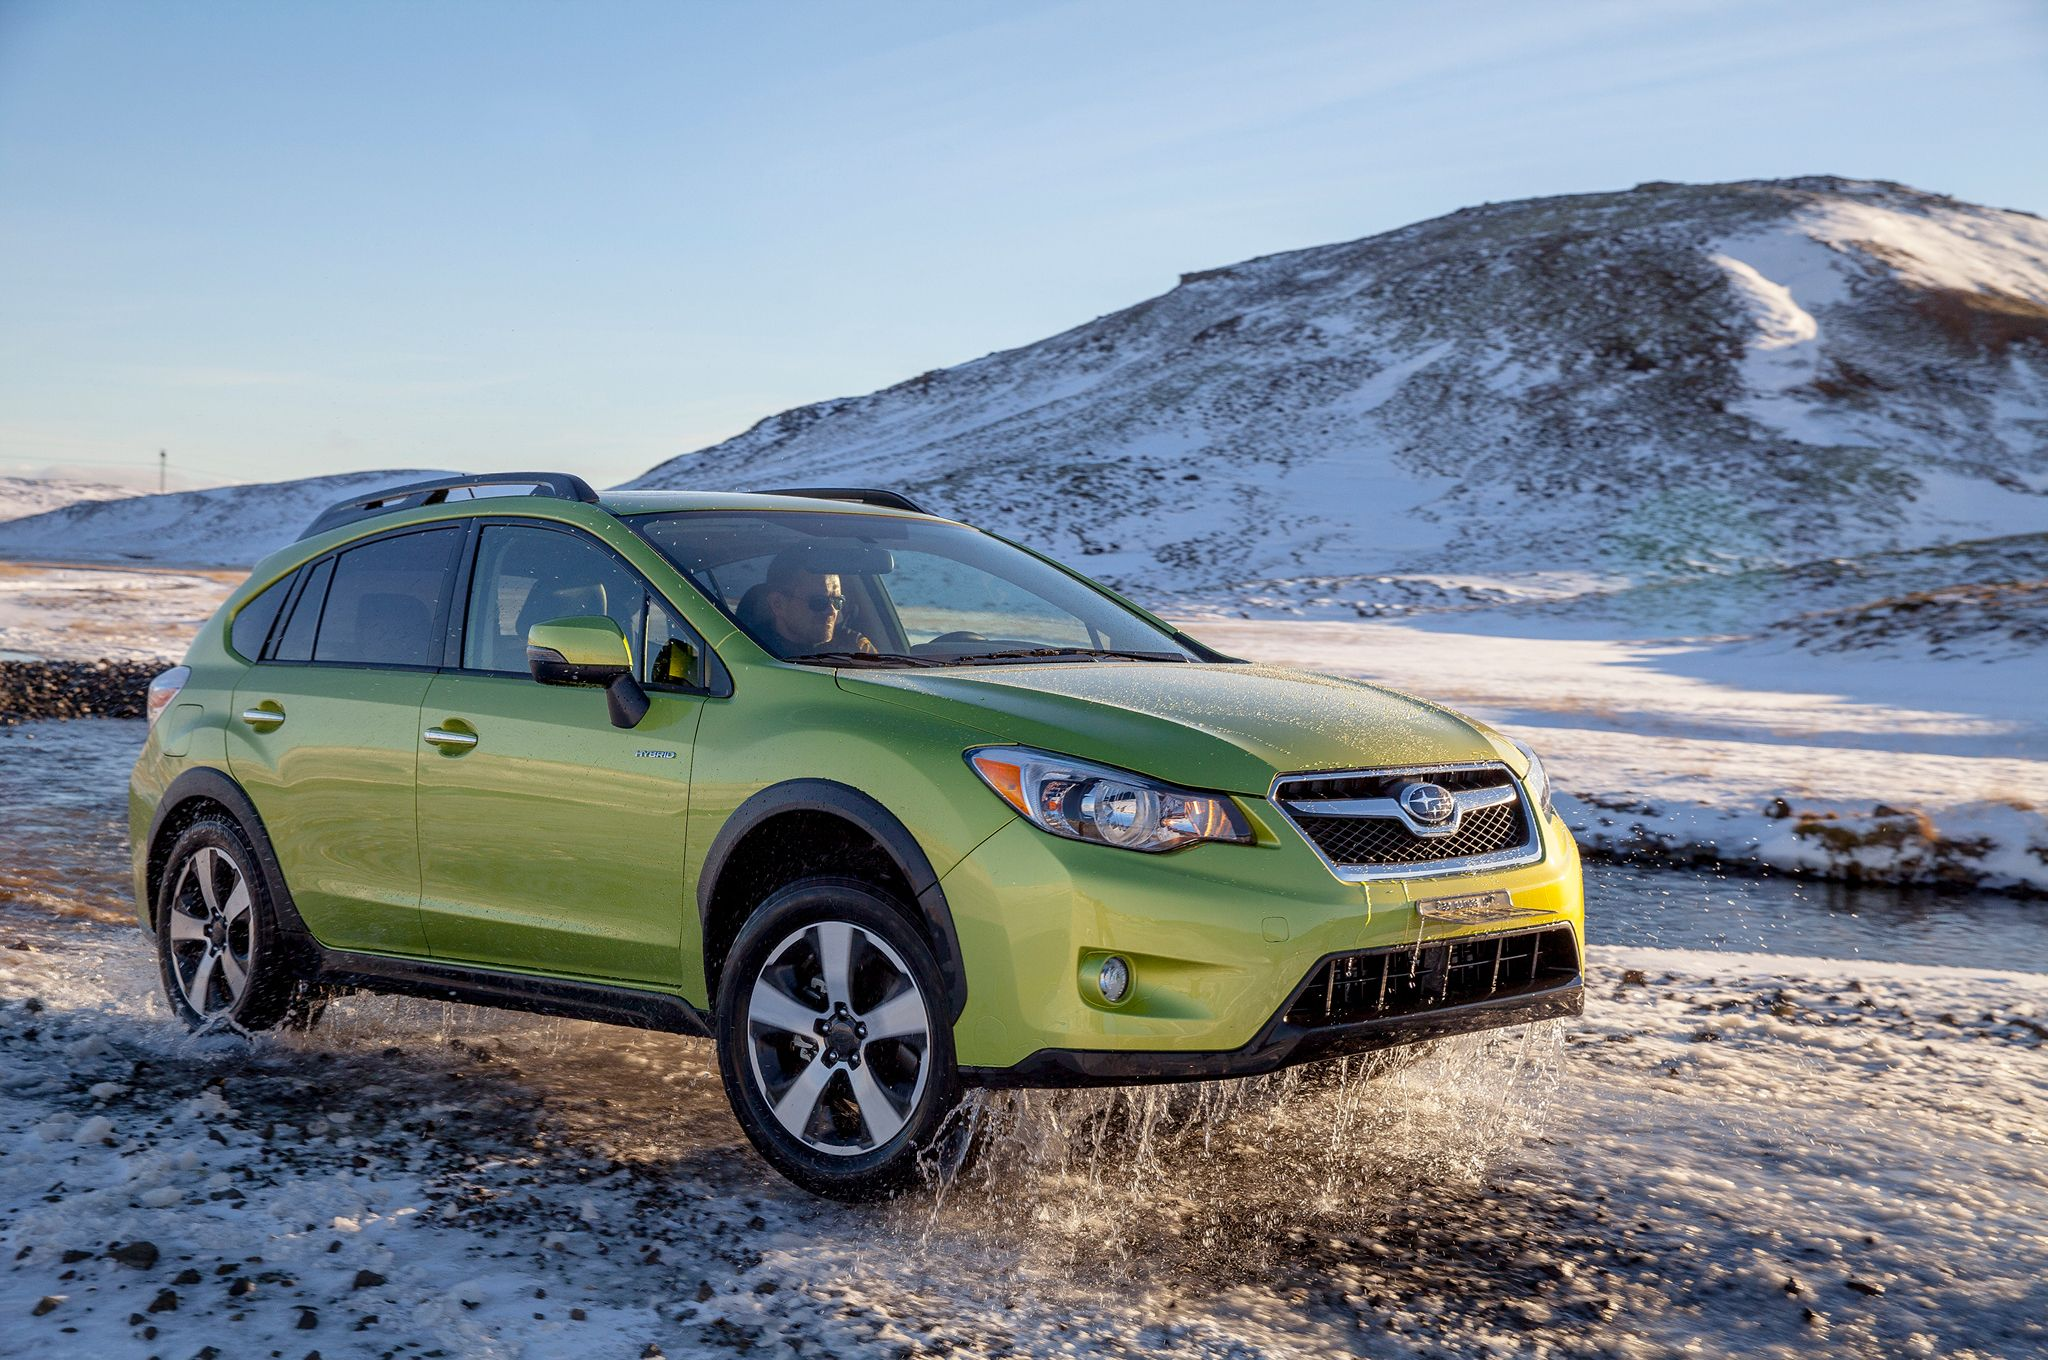 Every Subaru Model Is Designed With Features Important To You From Fuel Efficiency To Cargo Space And All The Creature Comfort Hybrid Car Subaru Subaru Models